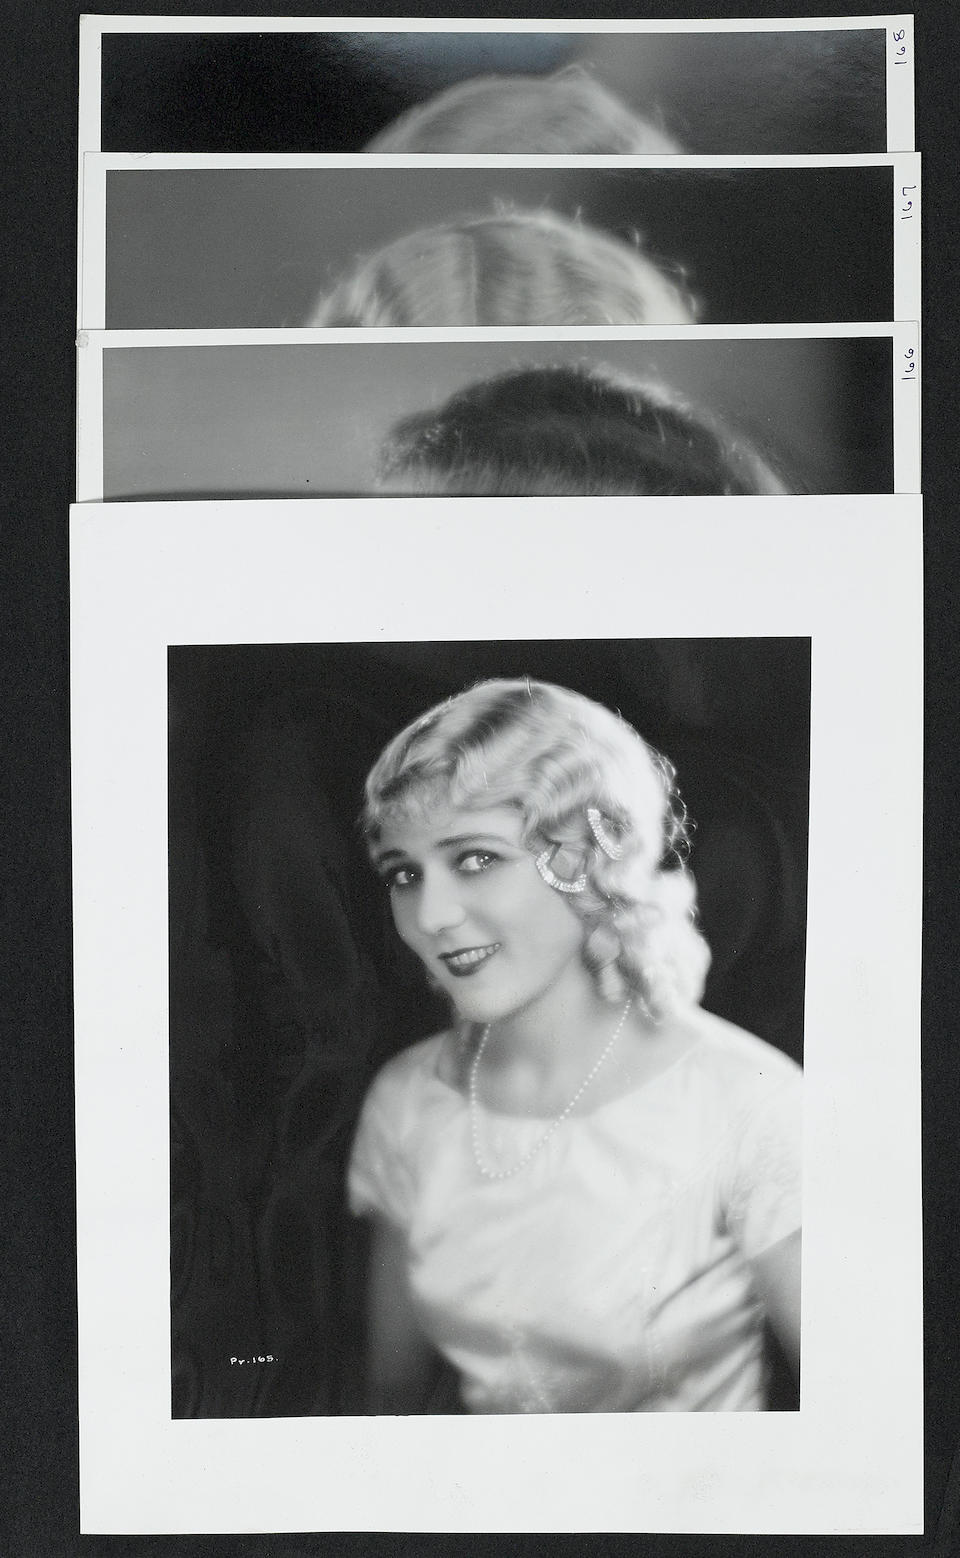 A Mary Pickford scrapbook of portrait photographs